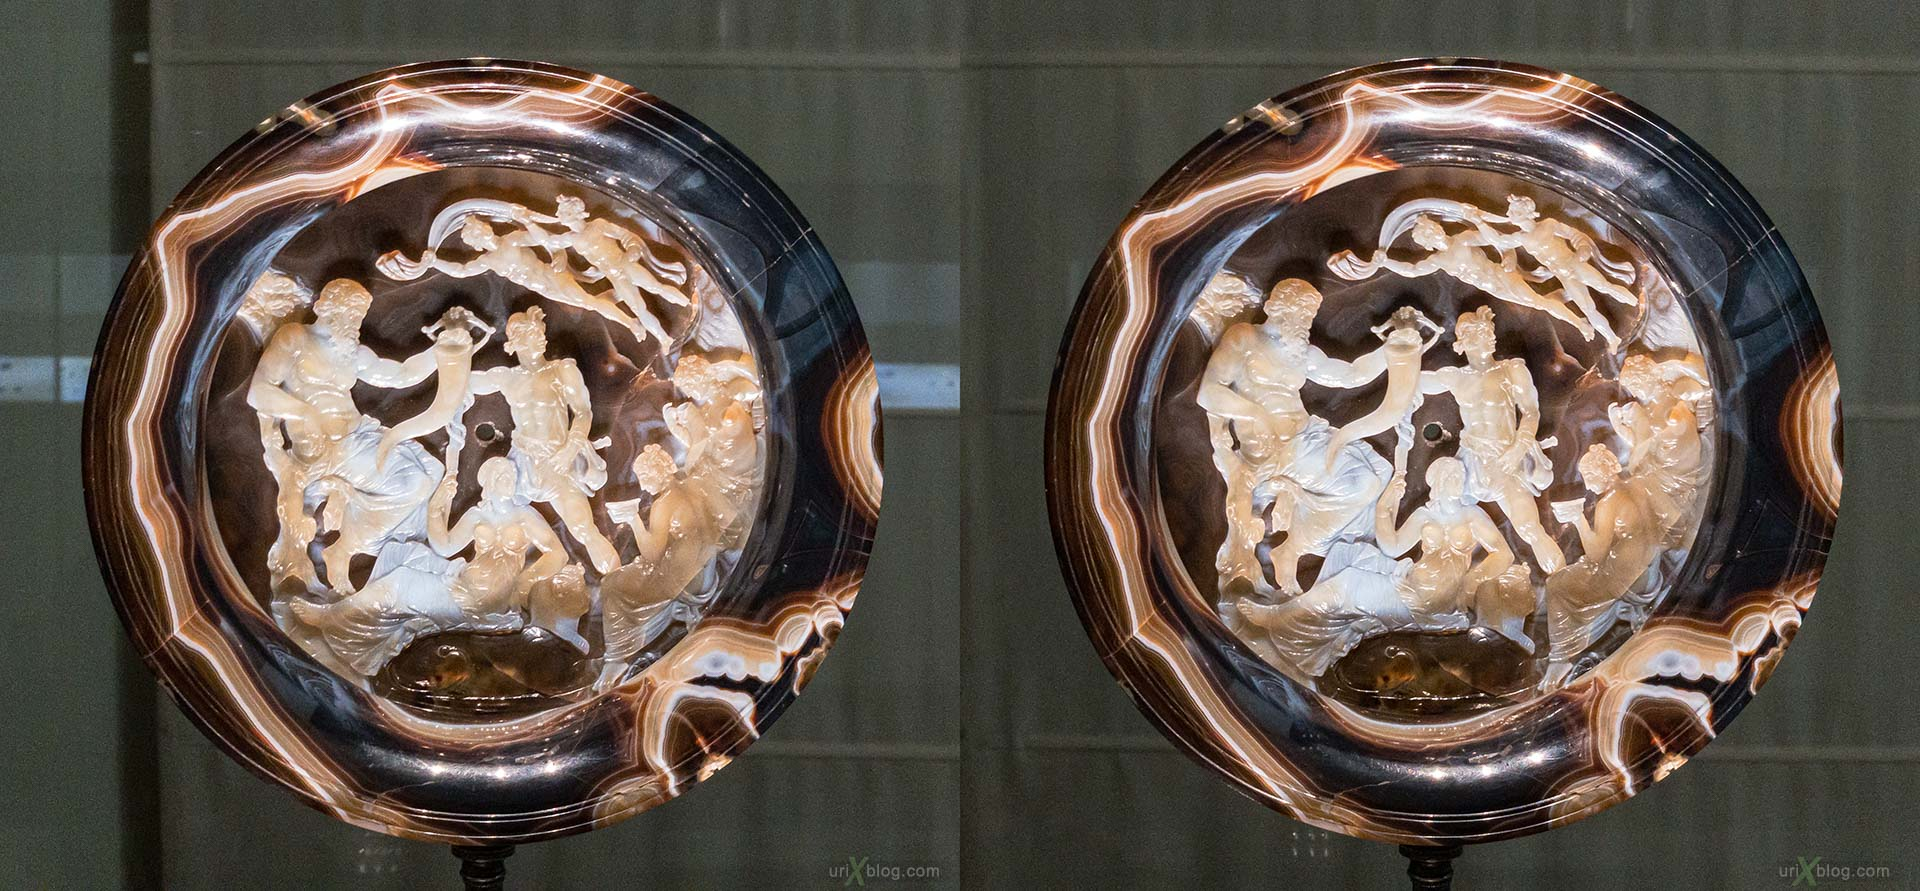 Farnese Cup, plate, National Archaeological Museum of Naples, ancient Rome, Pompei, exhibition, Naples, Italy, 3D, stereo pair, cross-eyed, crossview, cross view stereo pair, stereoscopic